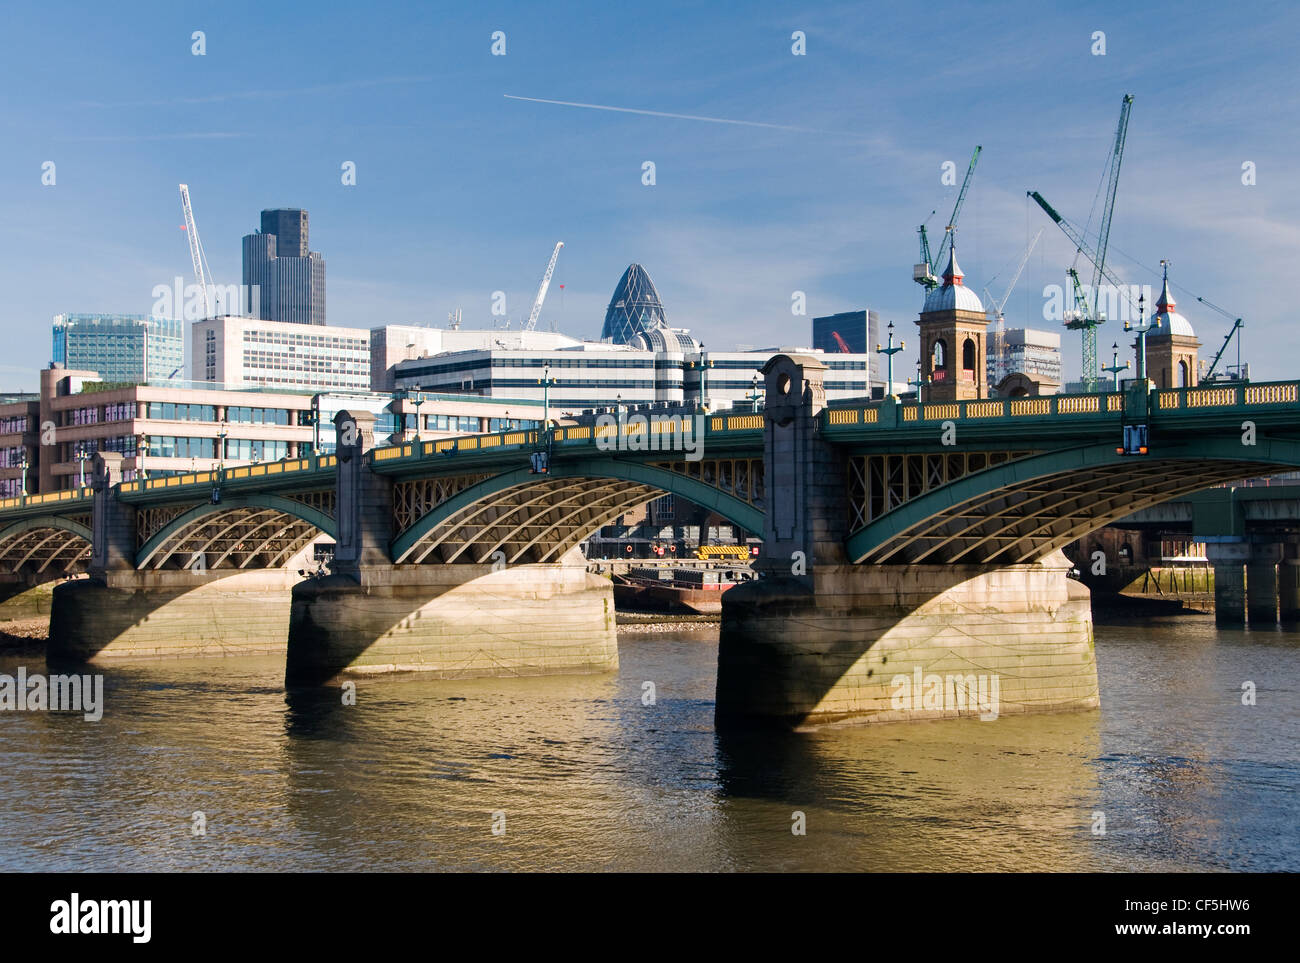 Southwark Bridge from the south bank of the River Thames. - Stock Image